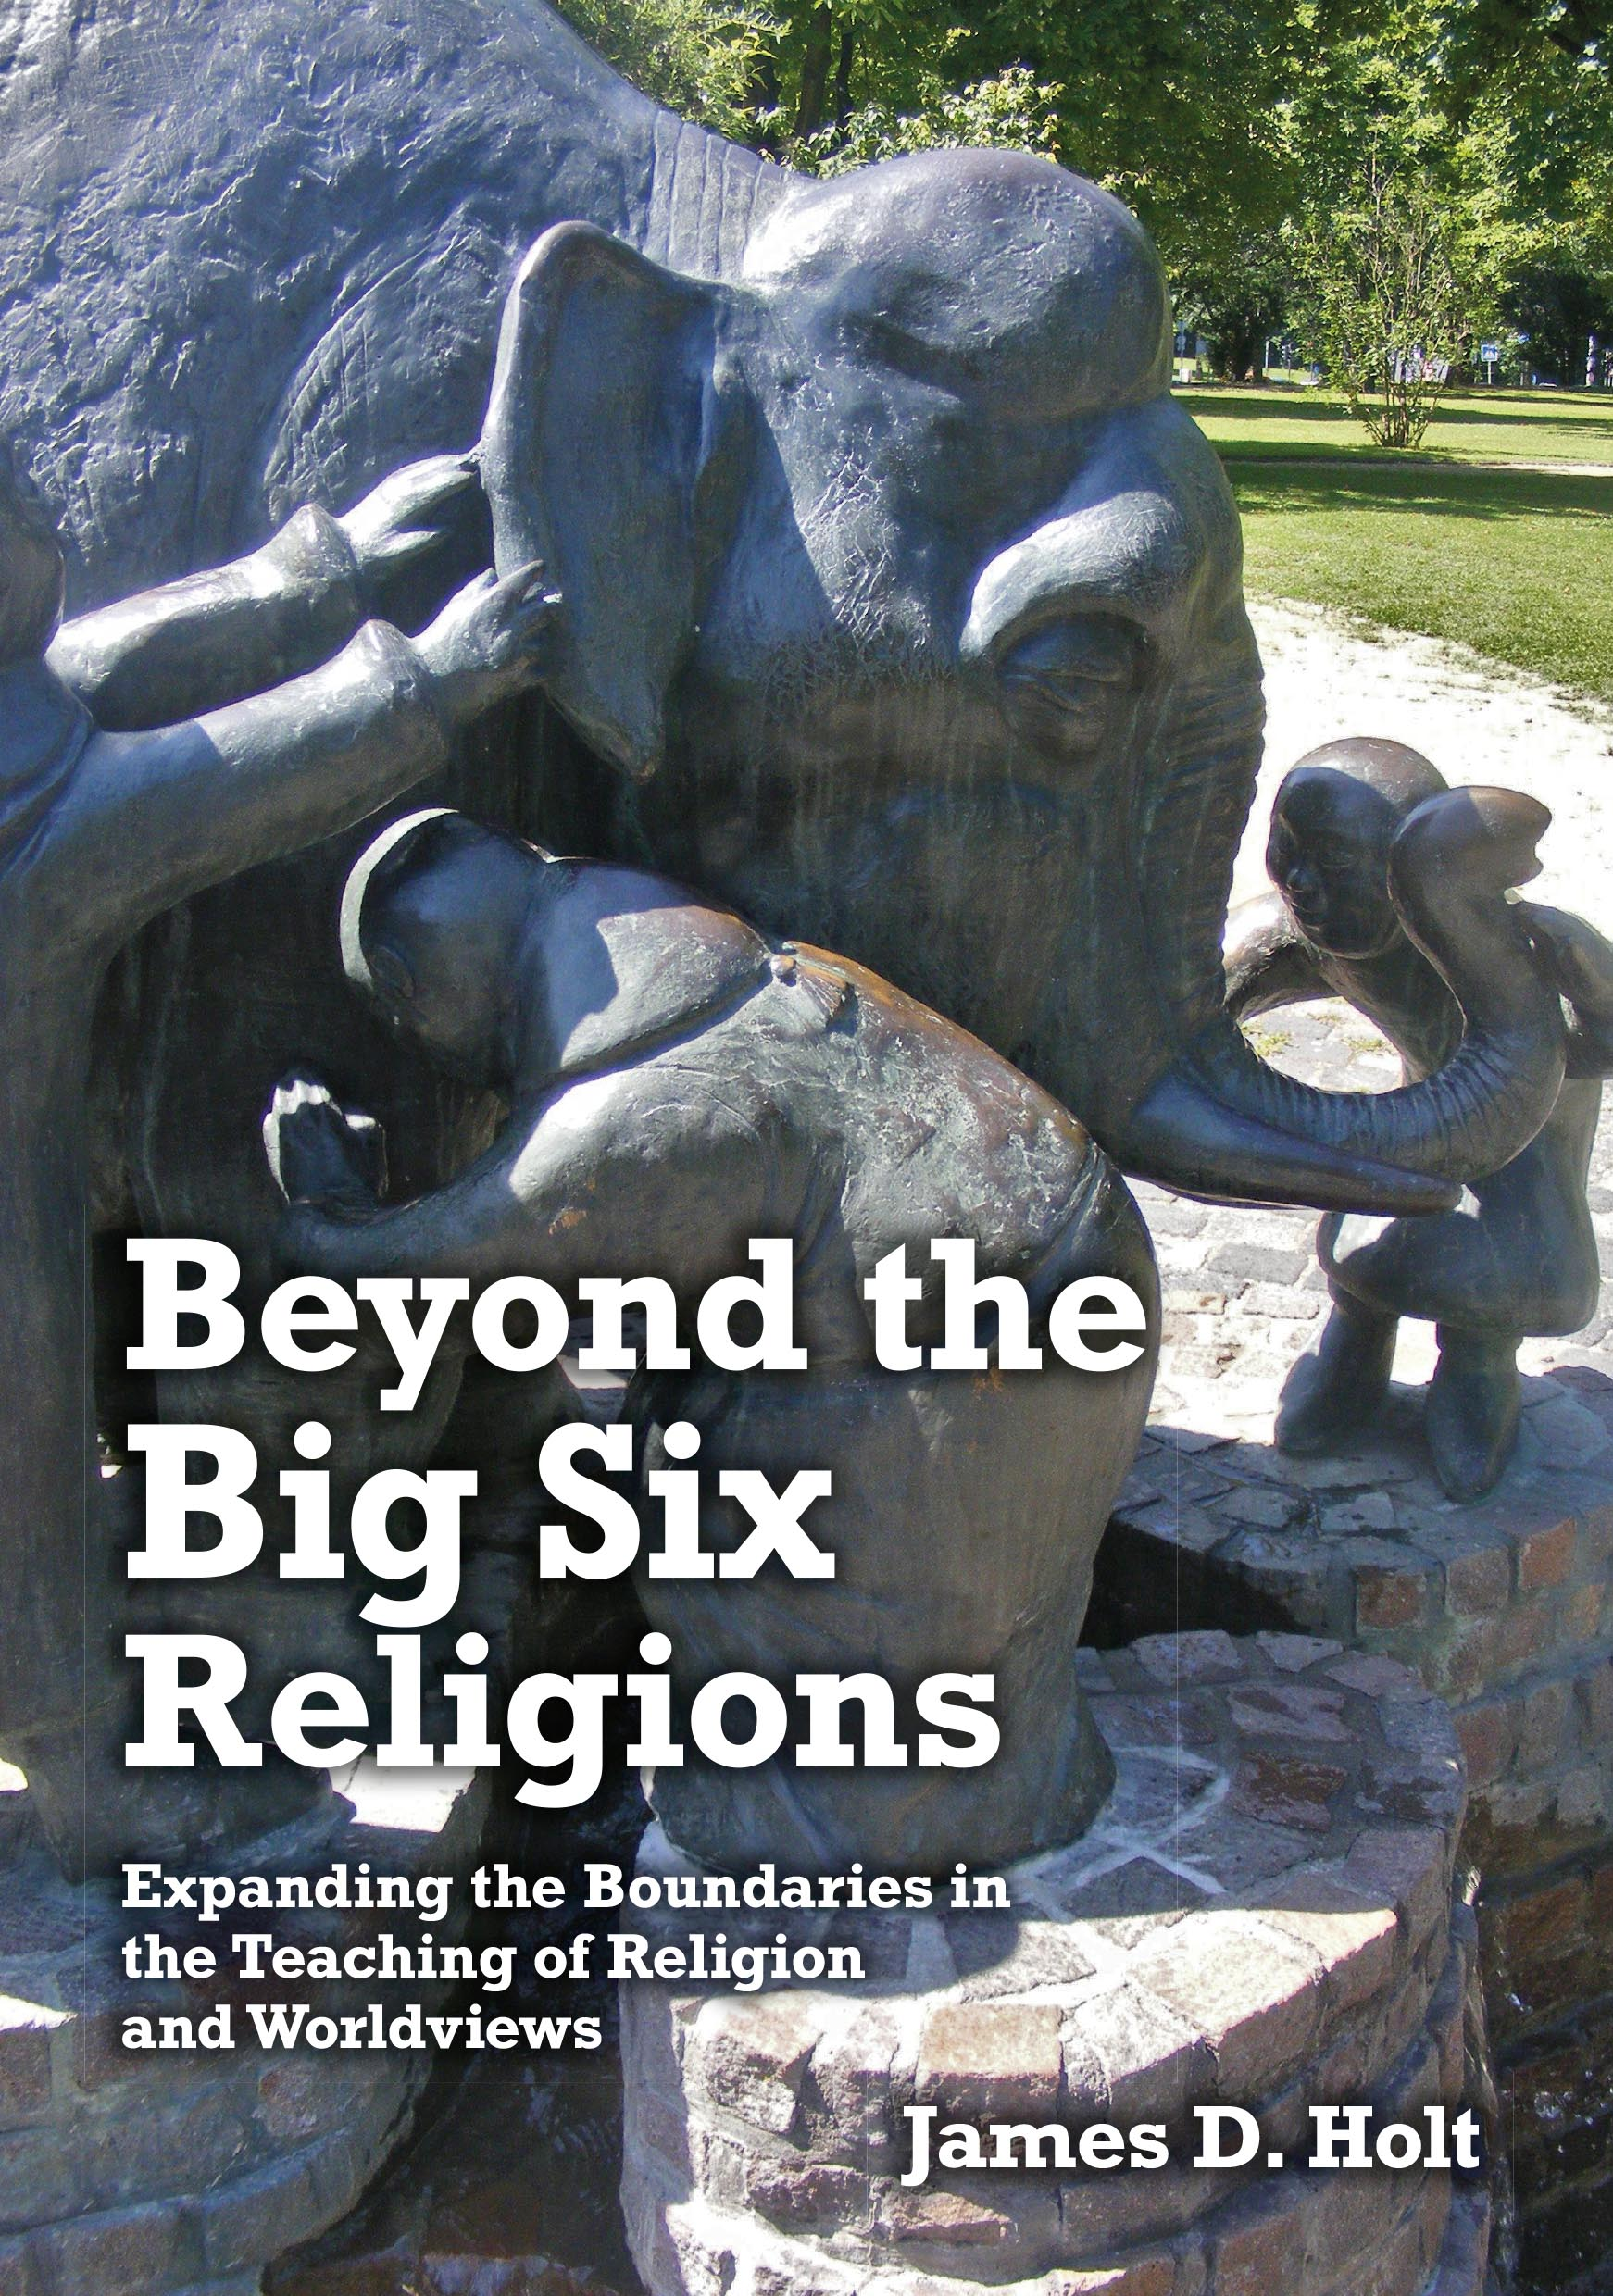 Beyond the Big Six Religions: Expanding the Boundaries in the Teaching of Religion and Worldviews